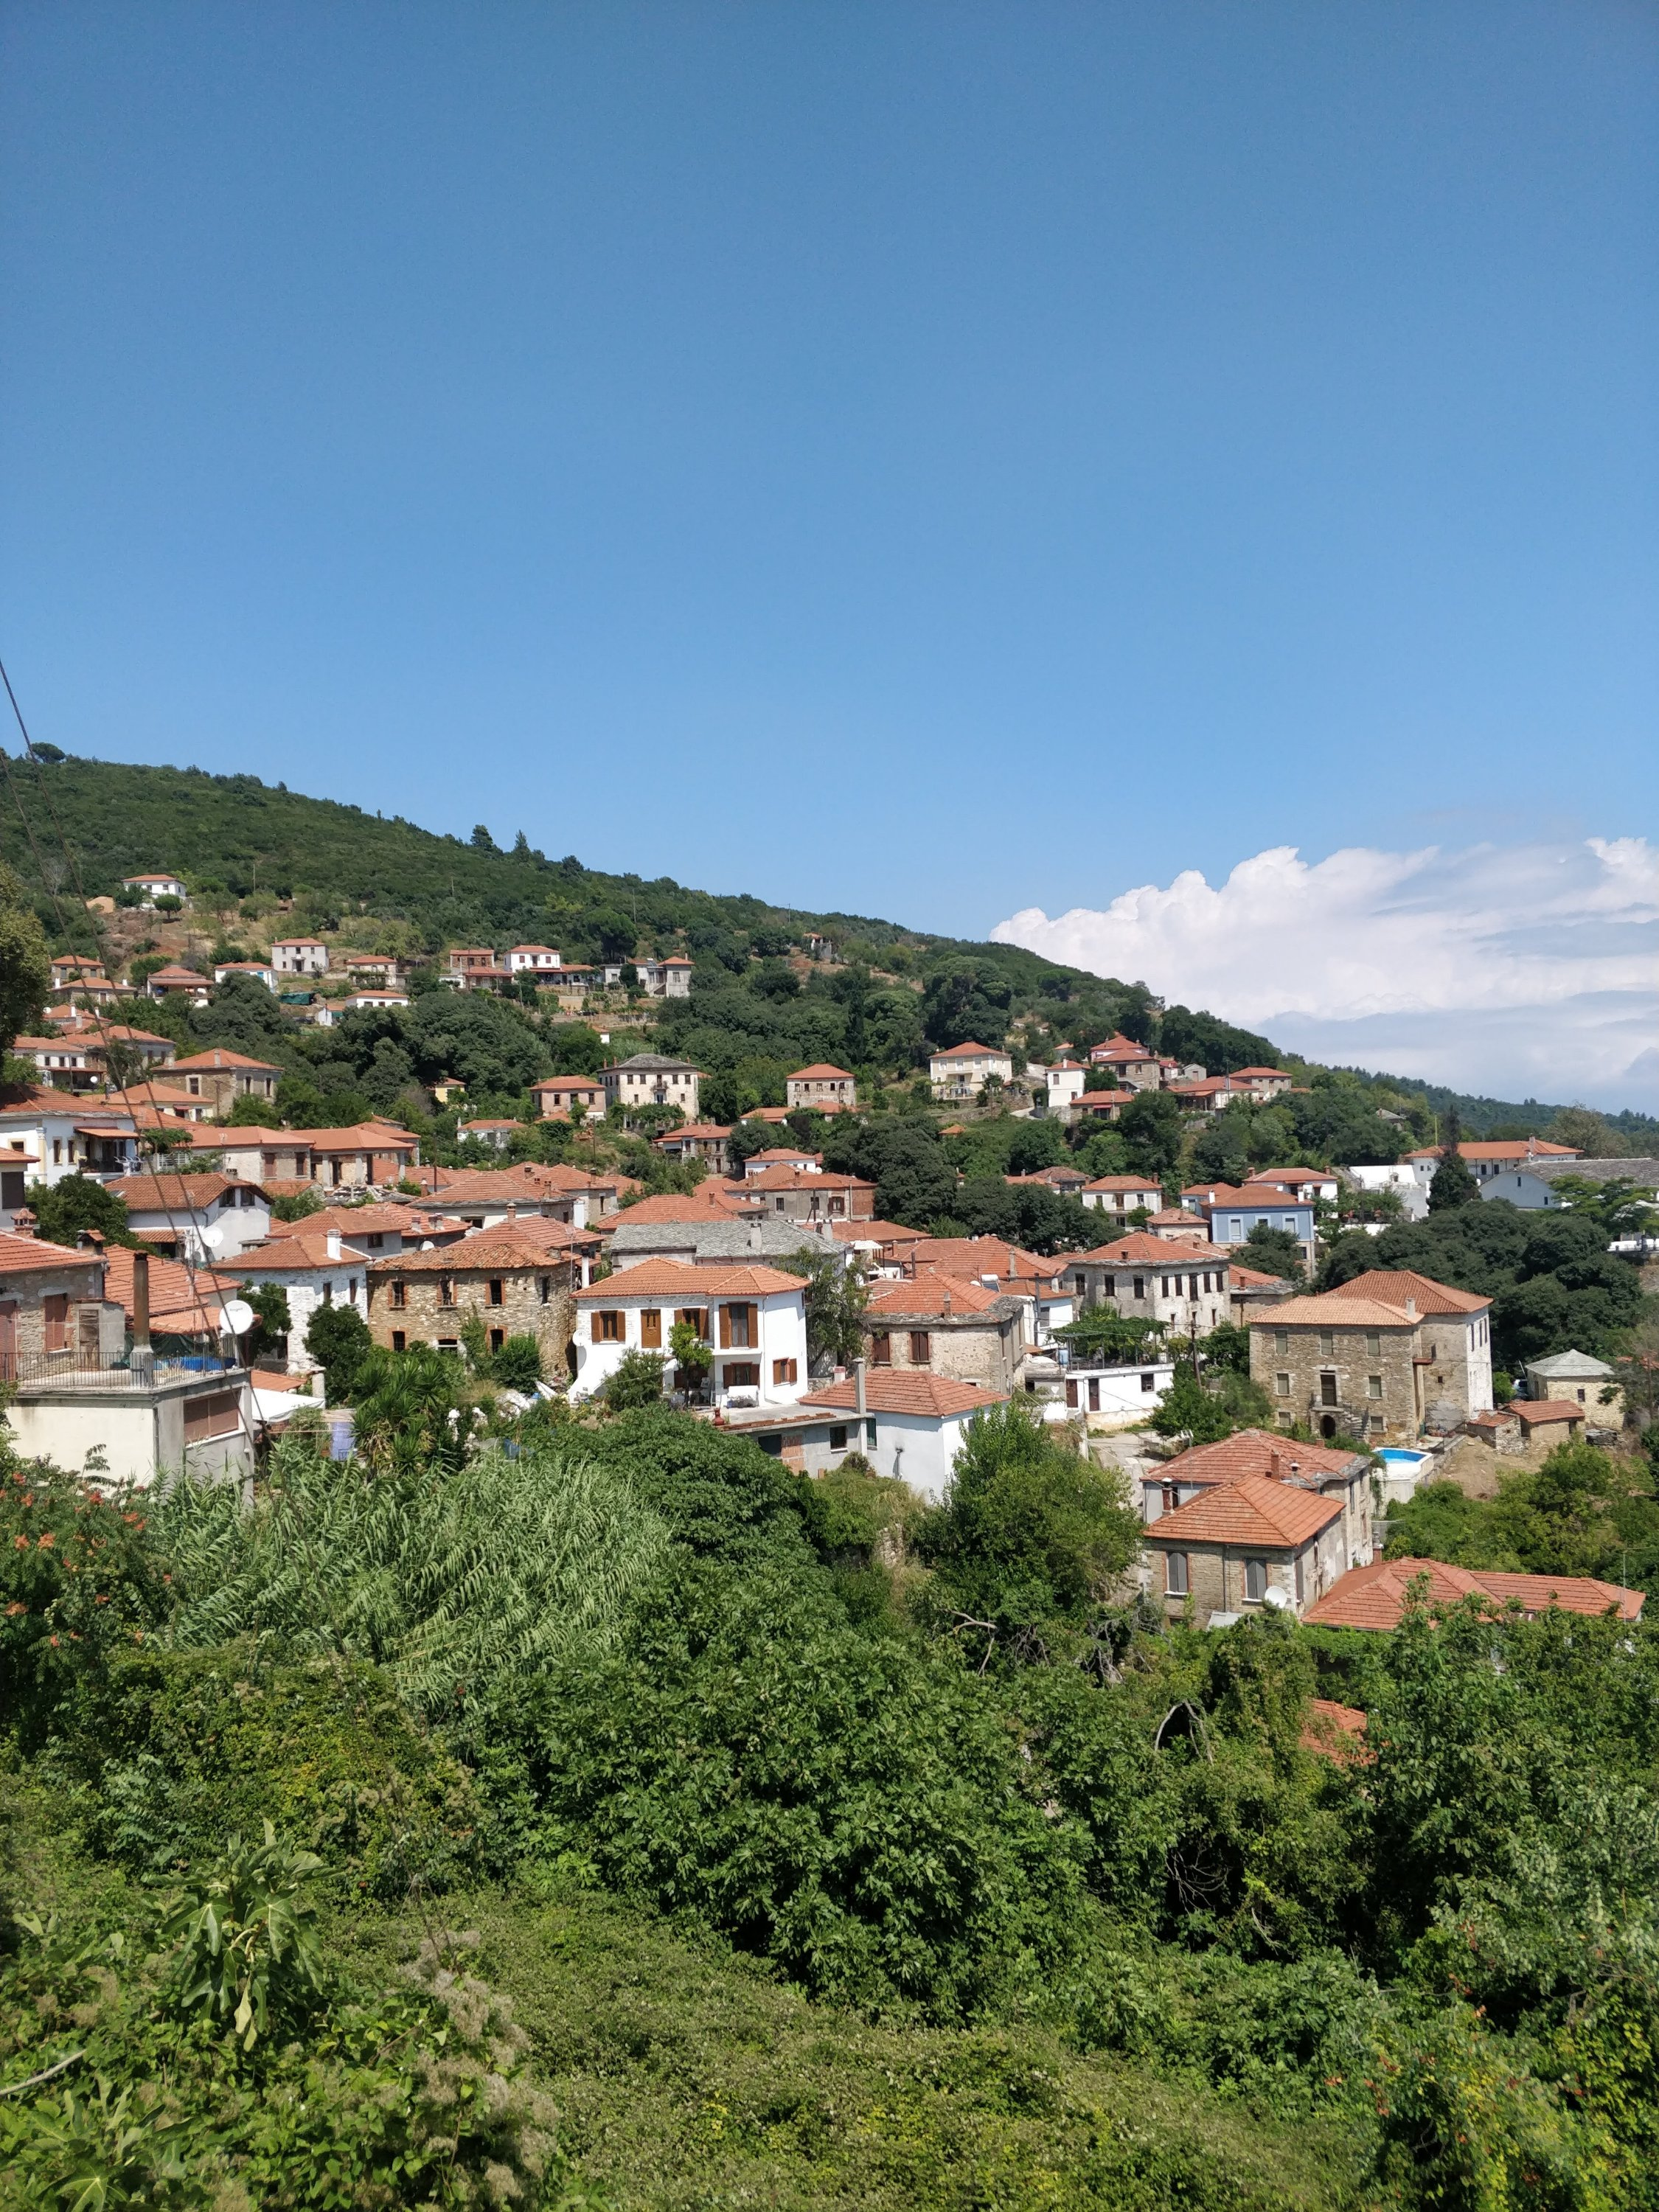 A panoramic picture of the village of Promyri in southern Pelion, Central Greece.